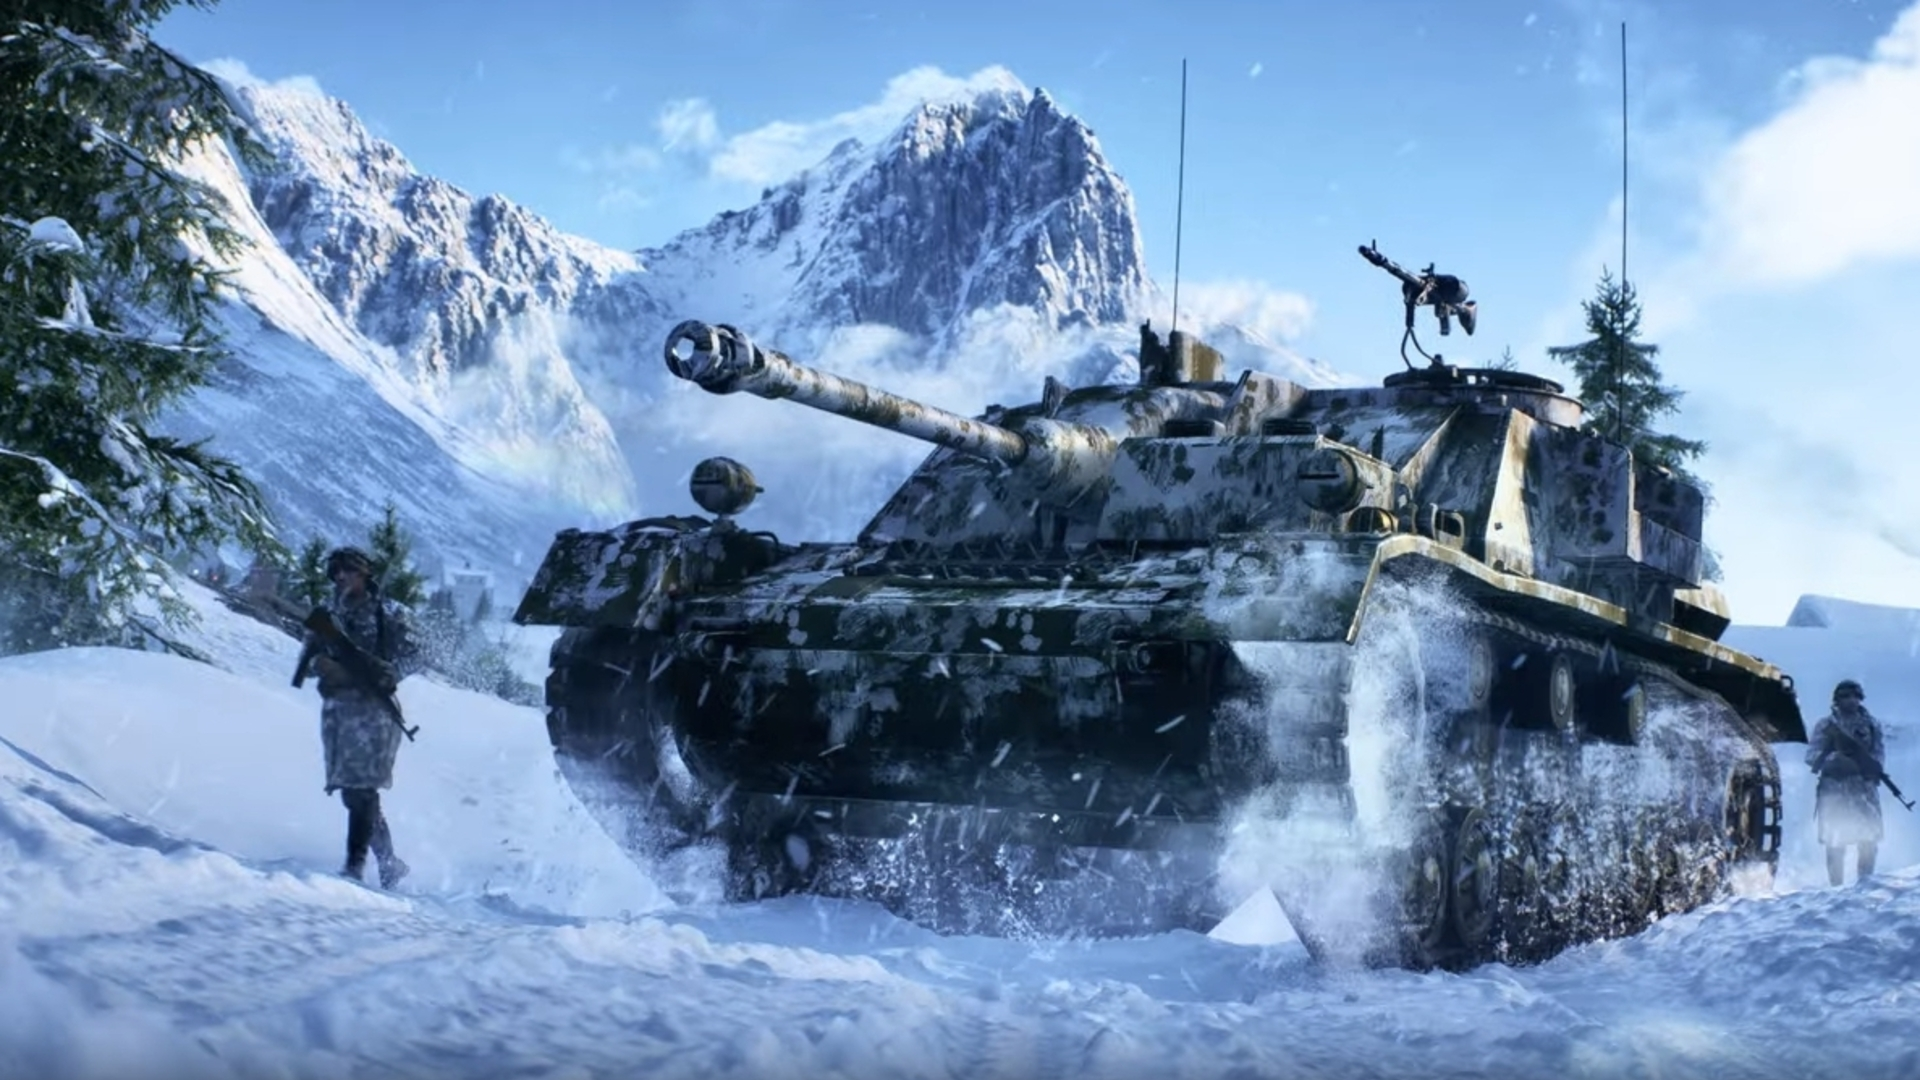 Flashy Battlefield 5 trailer teases chaotic new modes